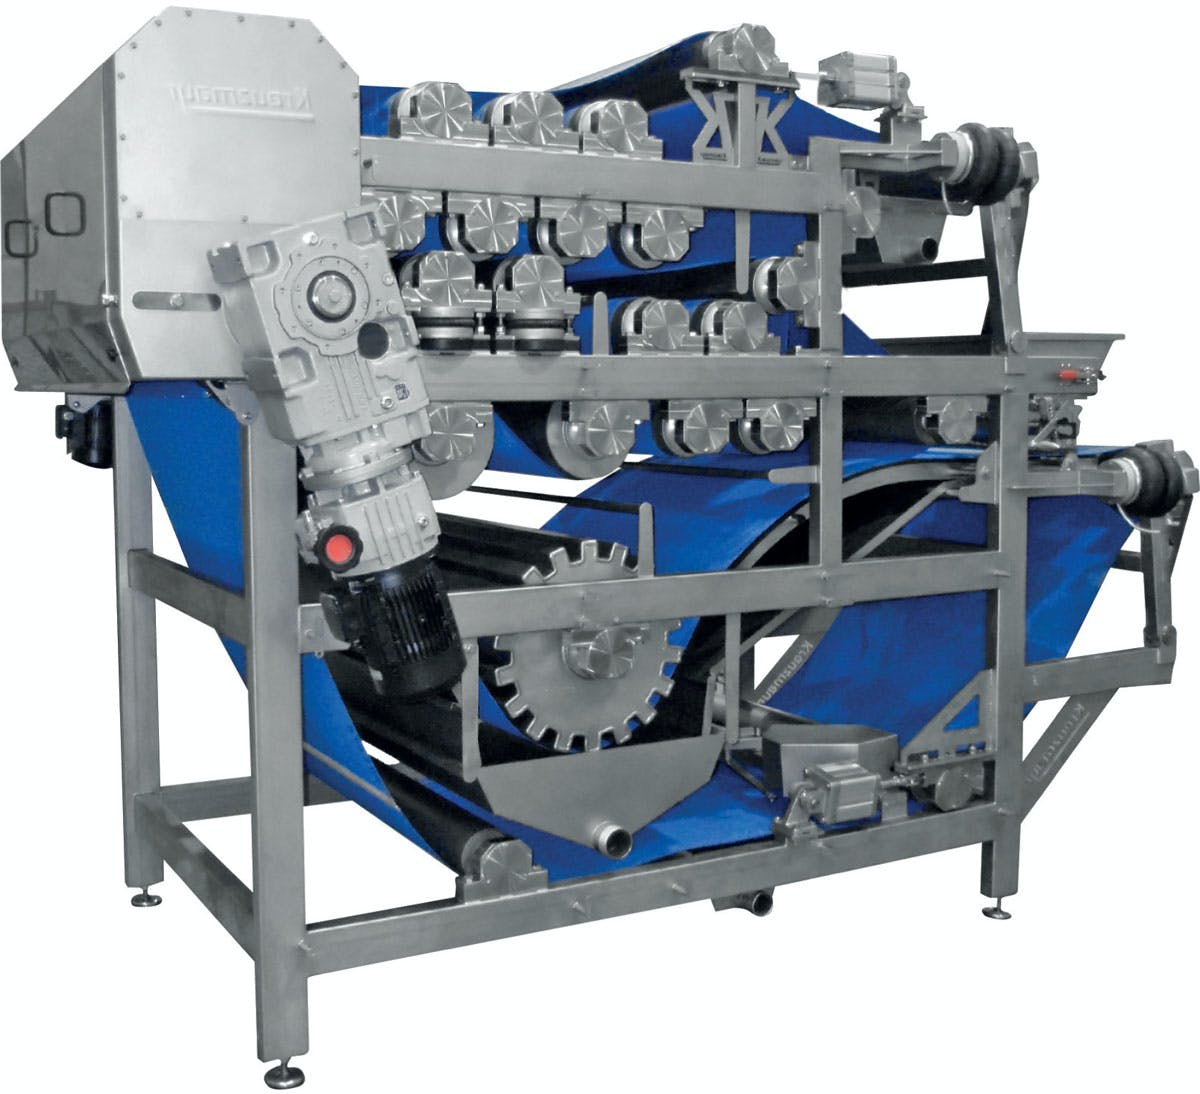 Kreuzmayr Double Belt Press - sold by Juicing Systems